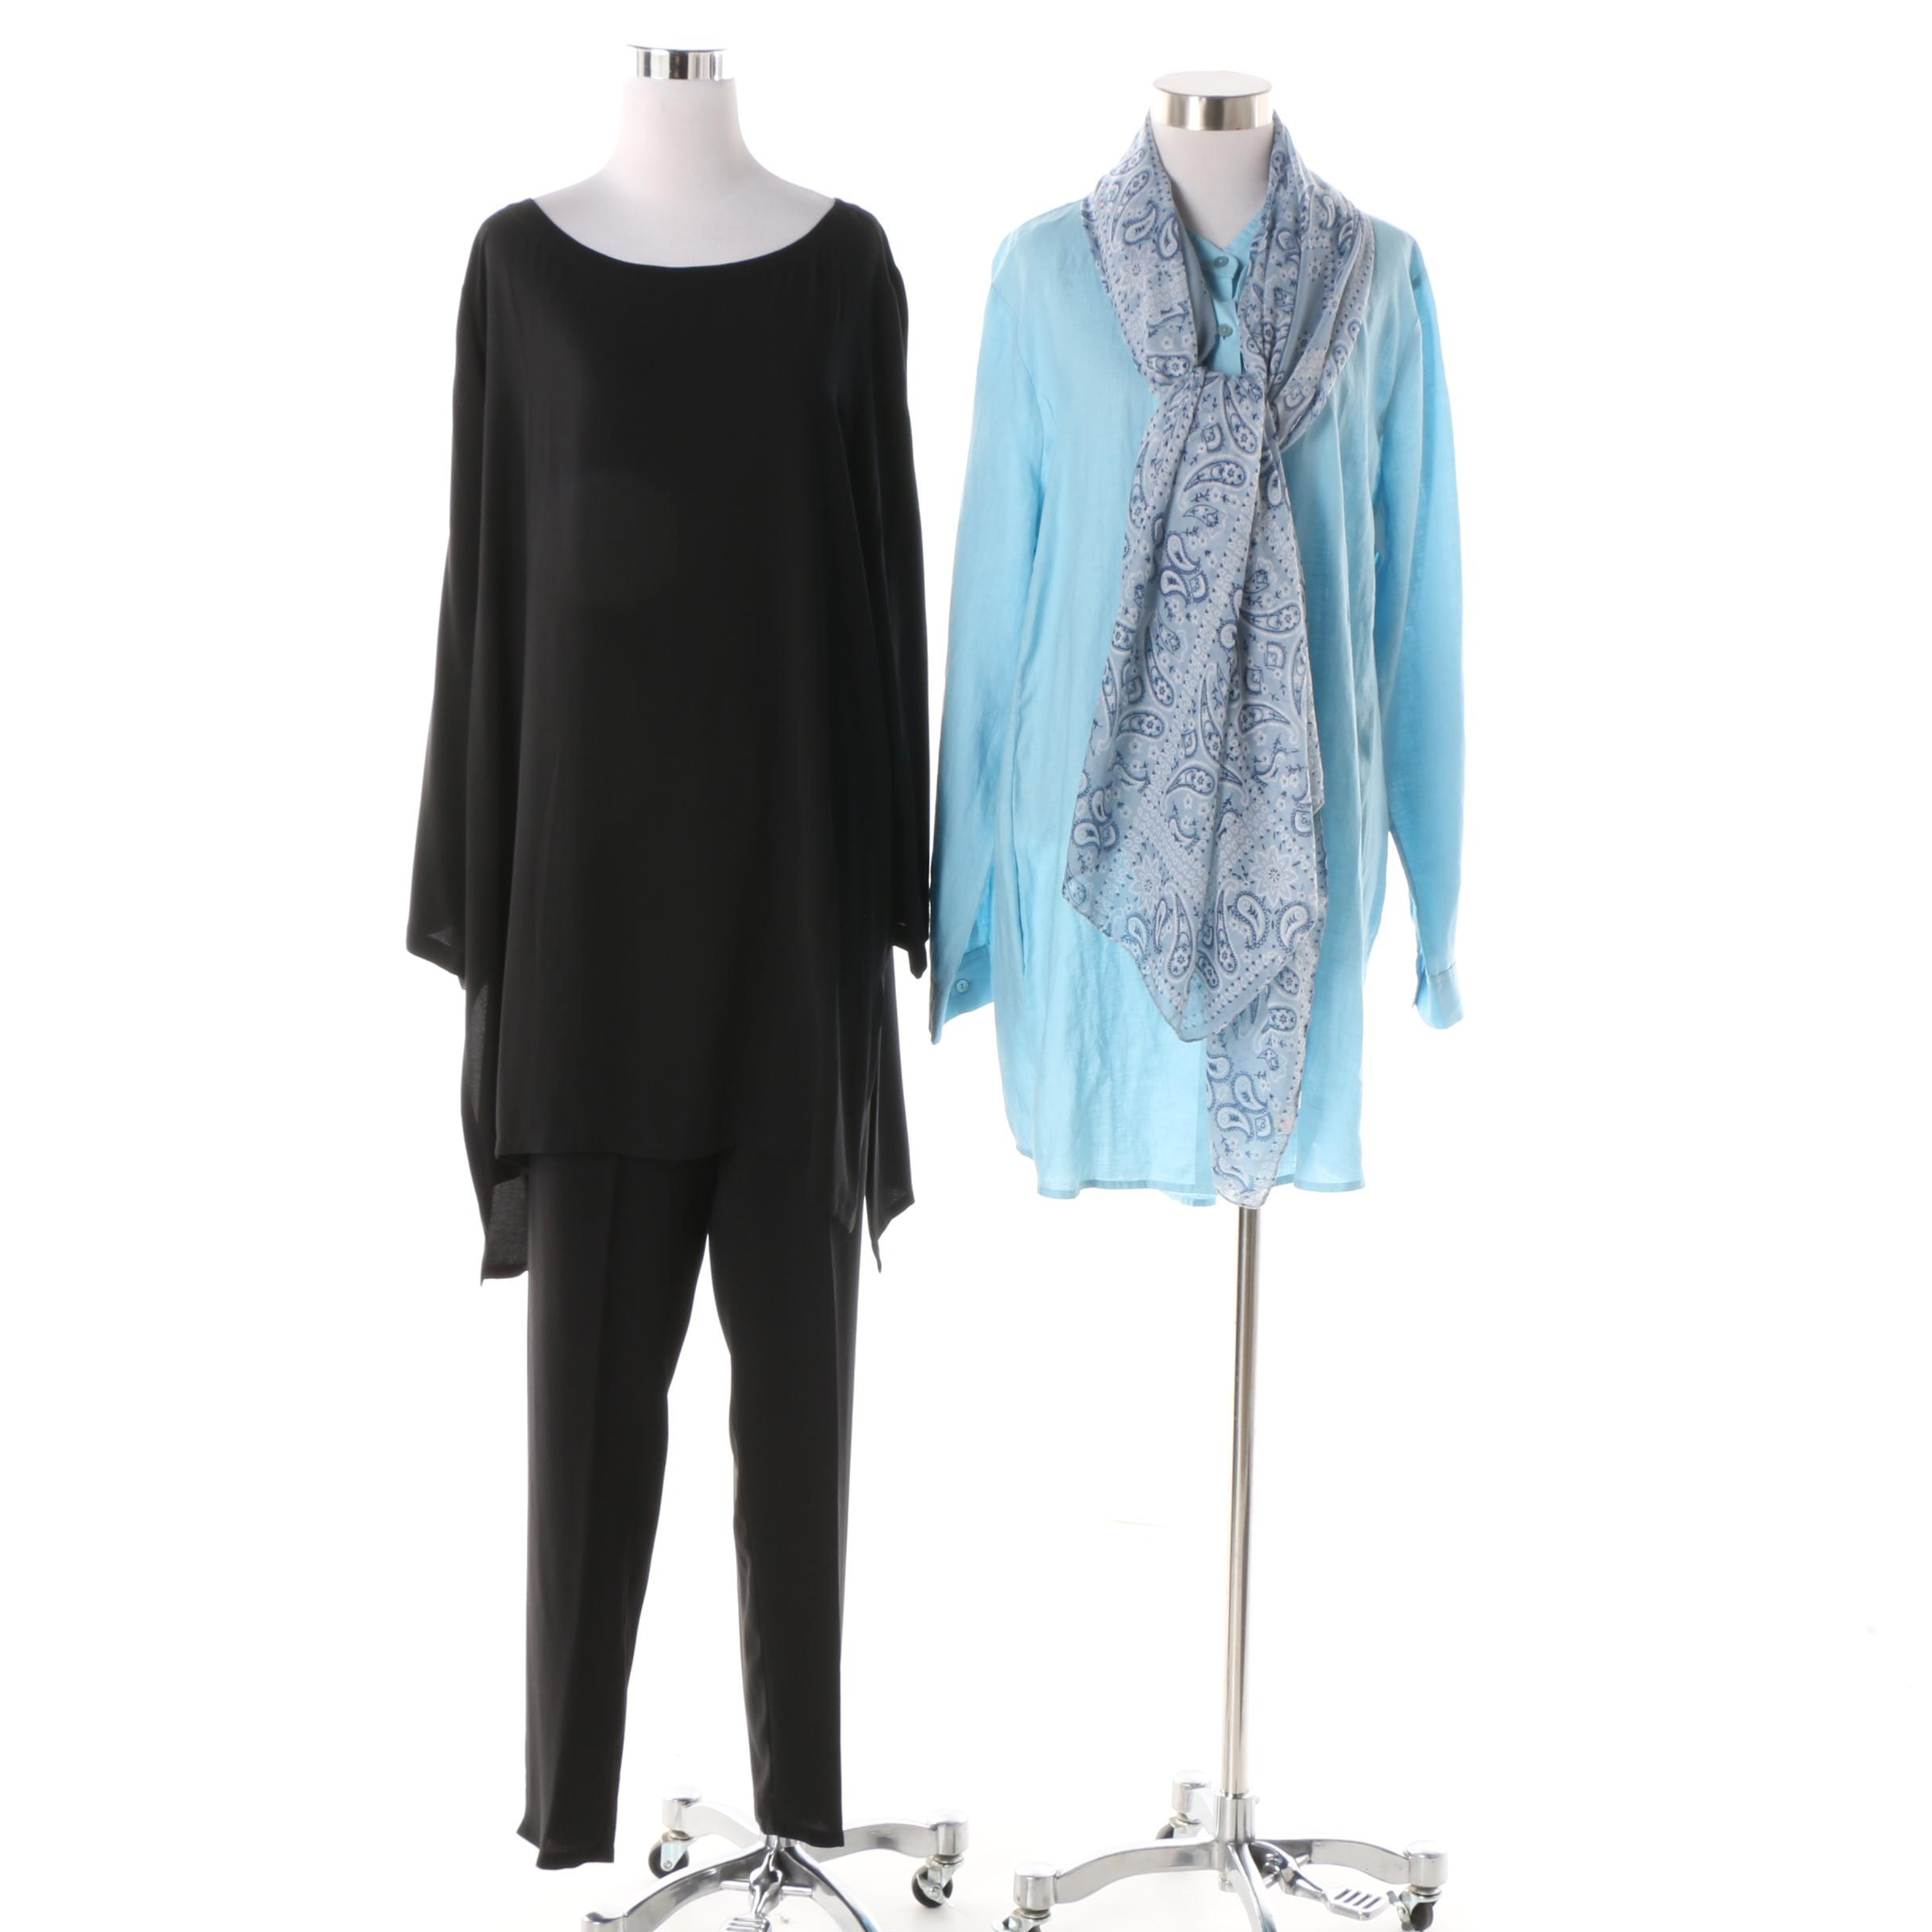 Eileen Fisher Clothing Separates w/ Tasha Polizzi Collection Lonesome Dove Scarf